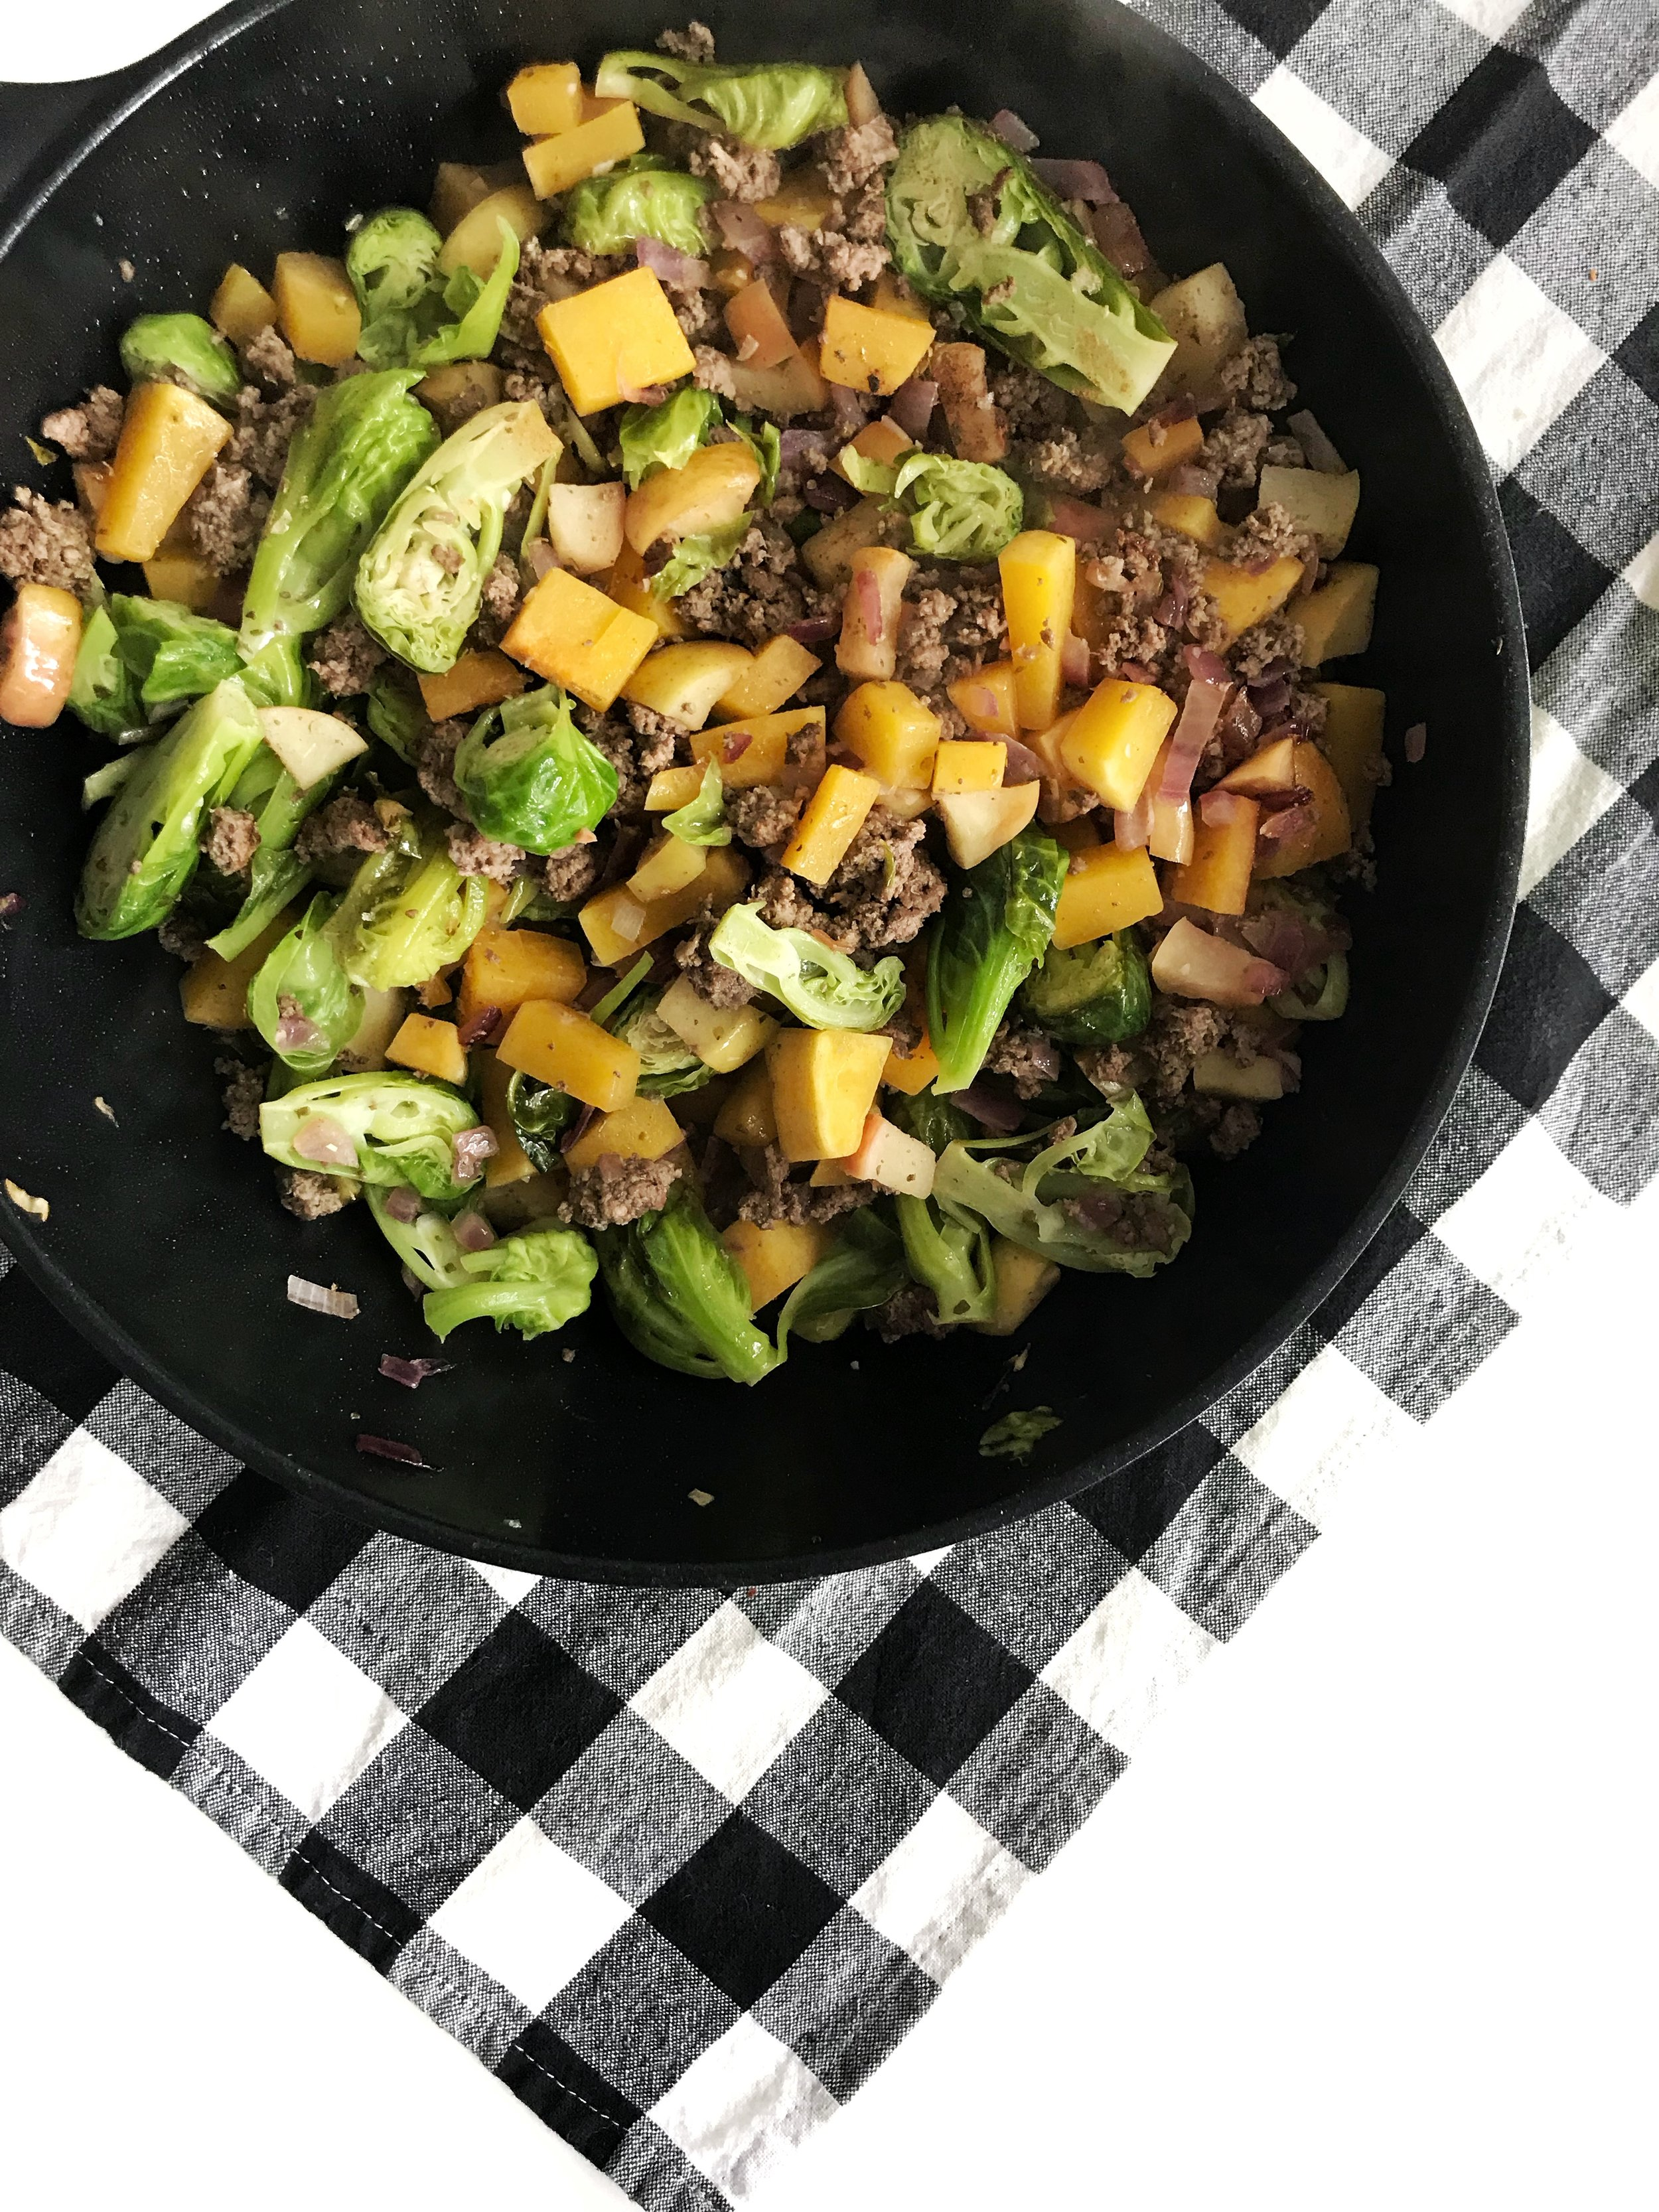 Apple & Butternut Breakfast Hash (AIP, GAPS, Paleo, Gluten-Free, Dairy-Free, Breakfast)